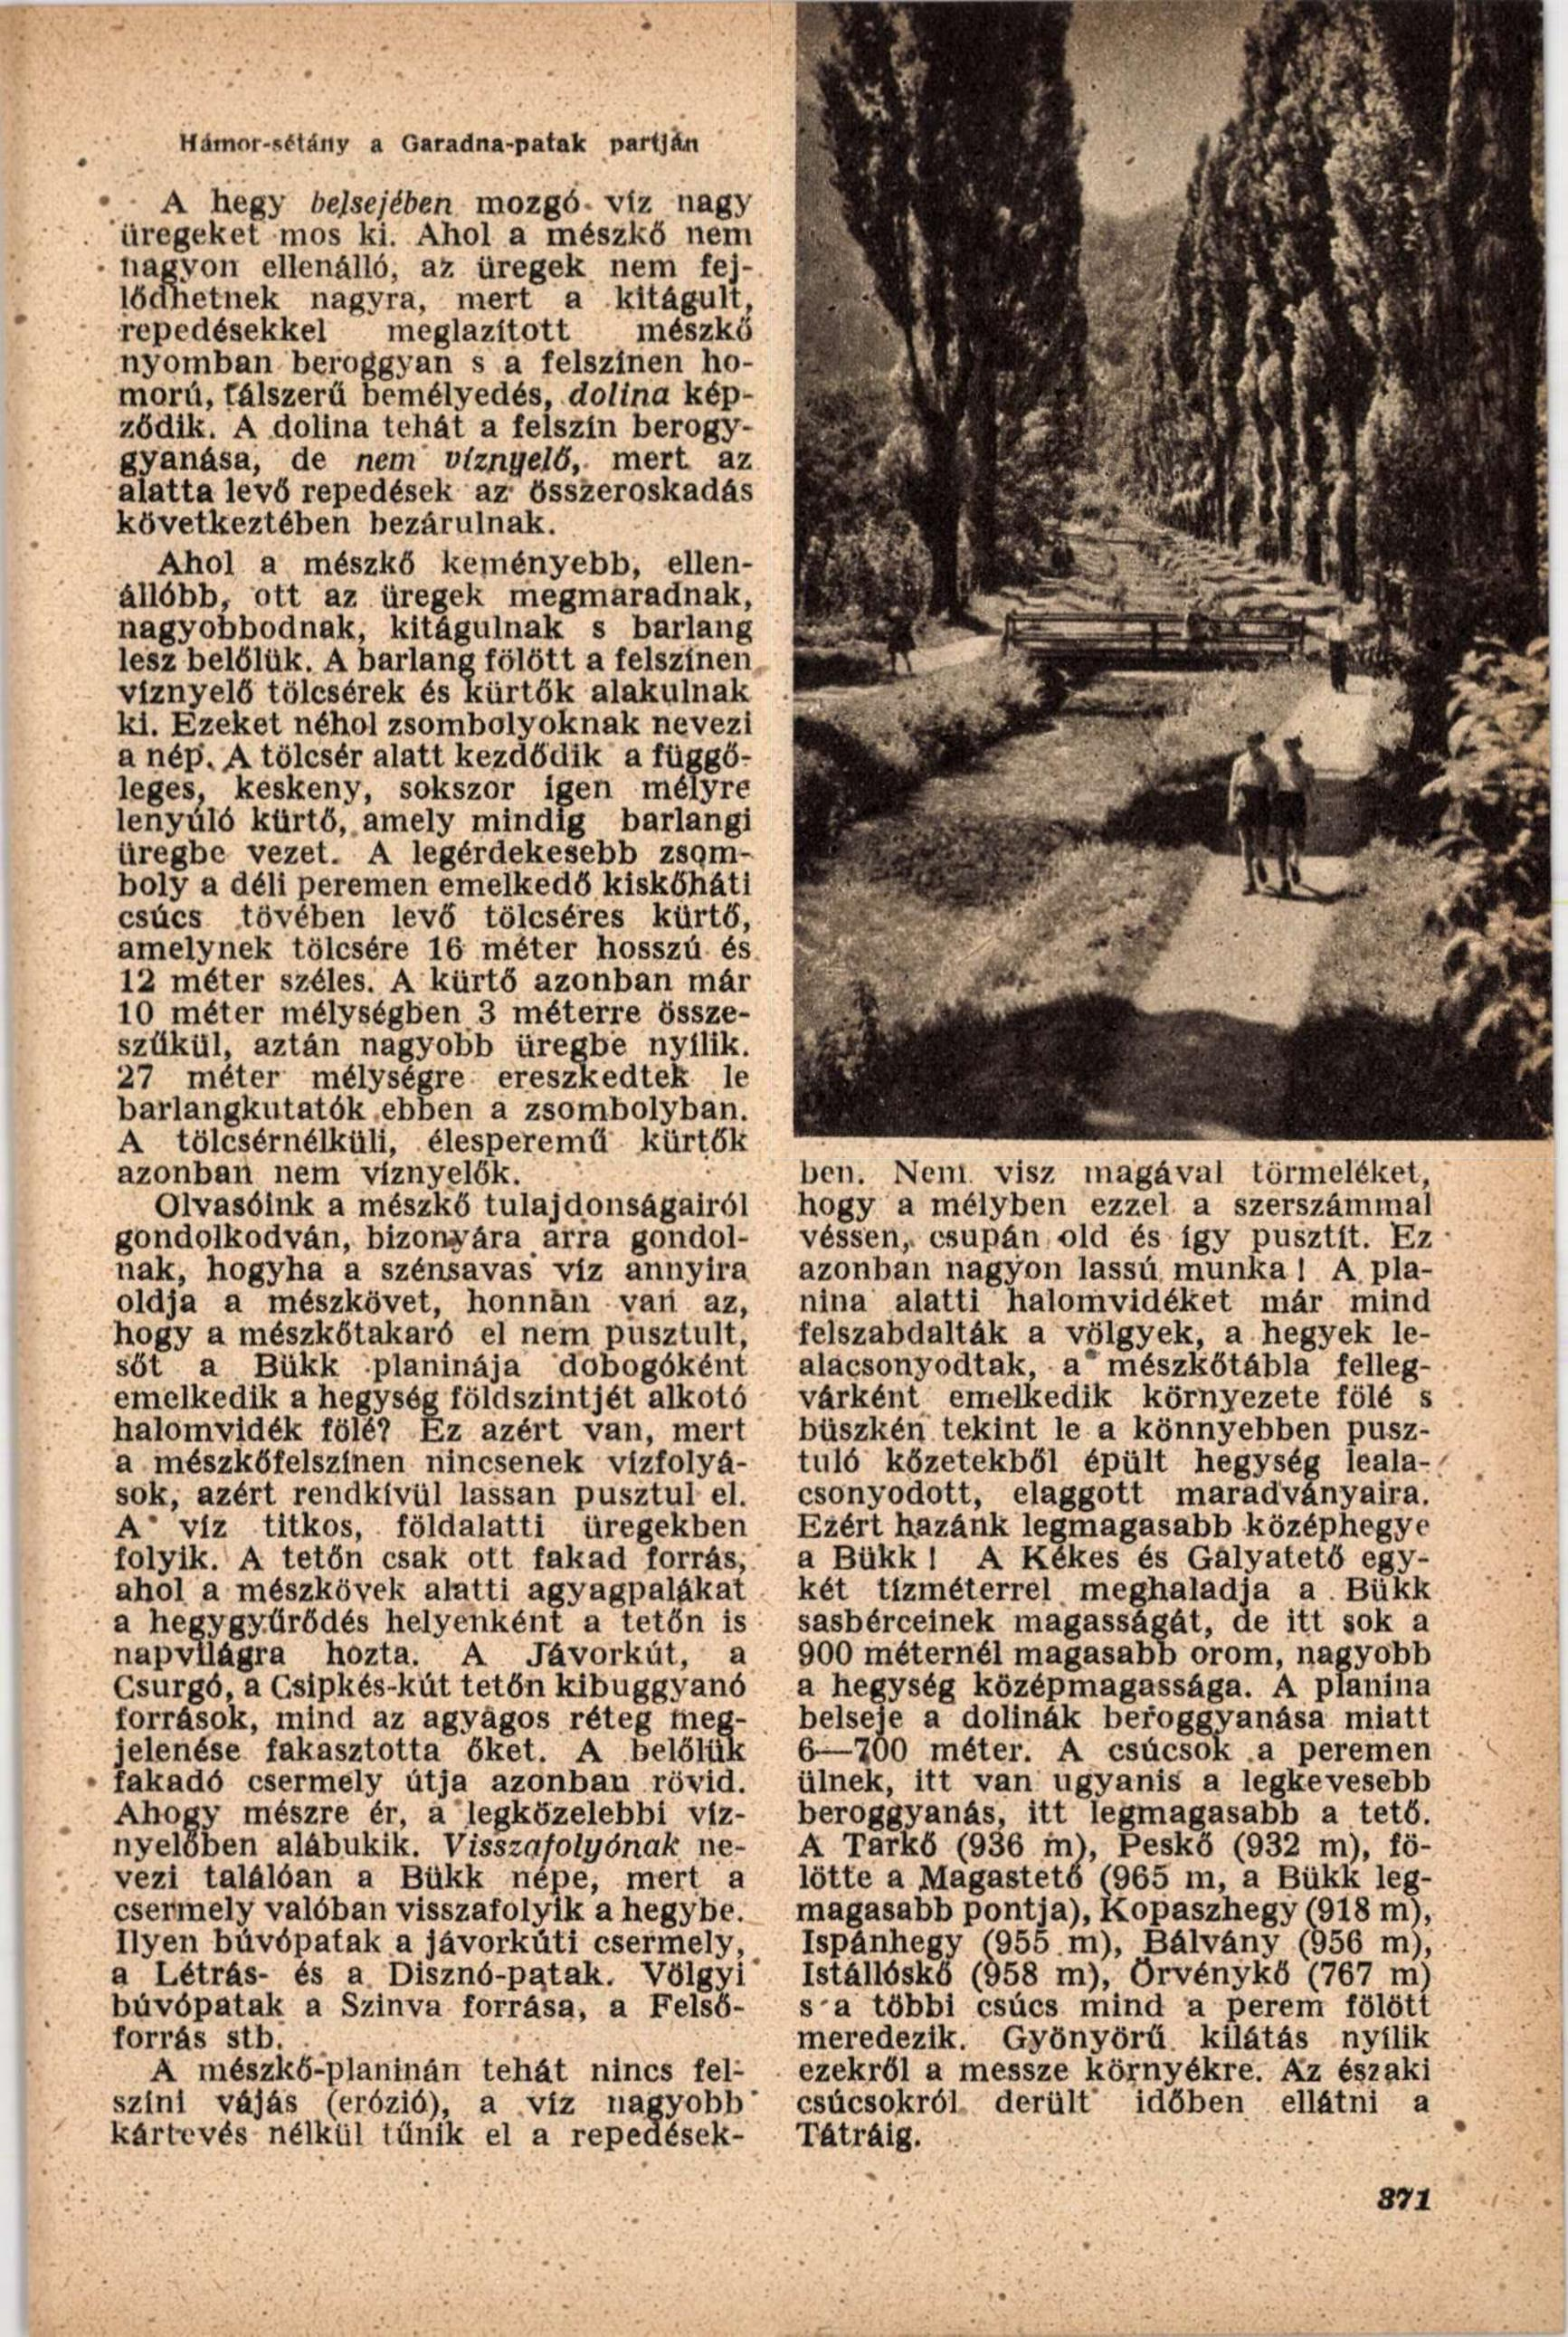 eletestudomany_1952_2_pages369-374-page-005.jpg